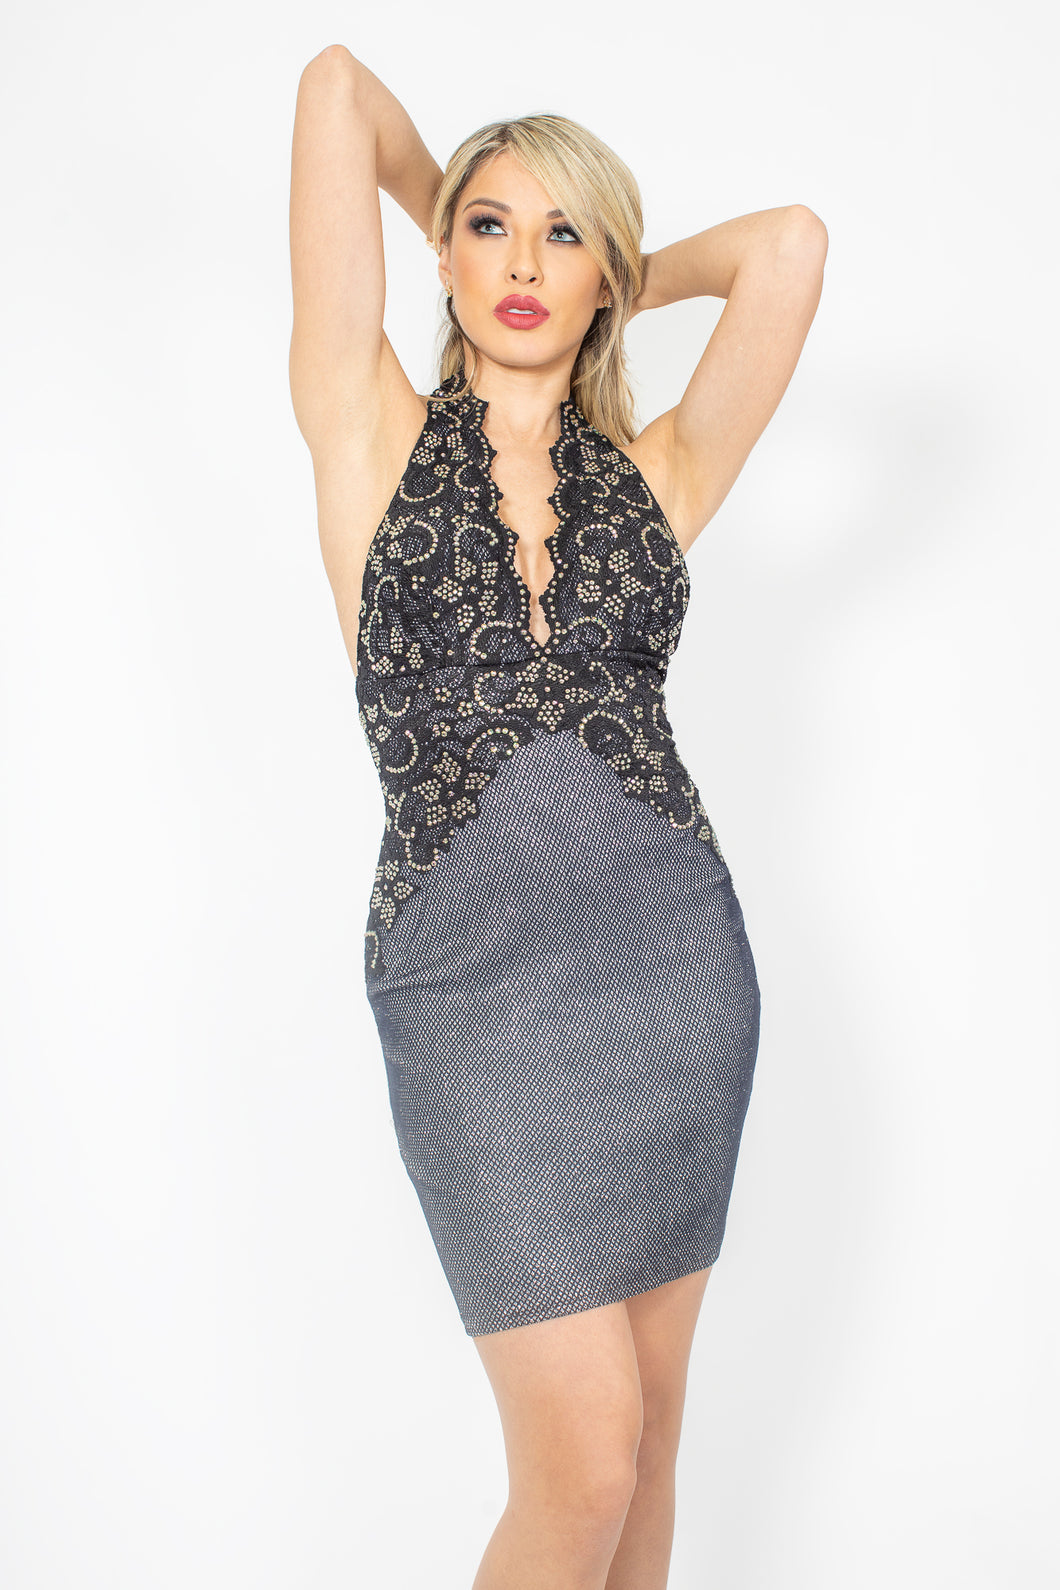 Lola Metallic Grey and Silver with Gold Crystal Cocktail Dress - BACCIO Couture